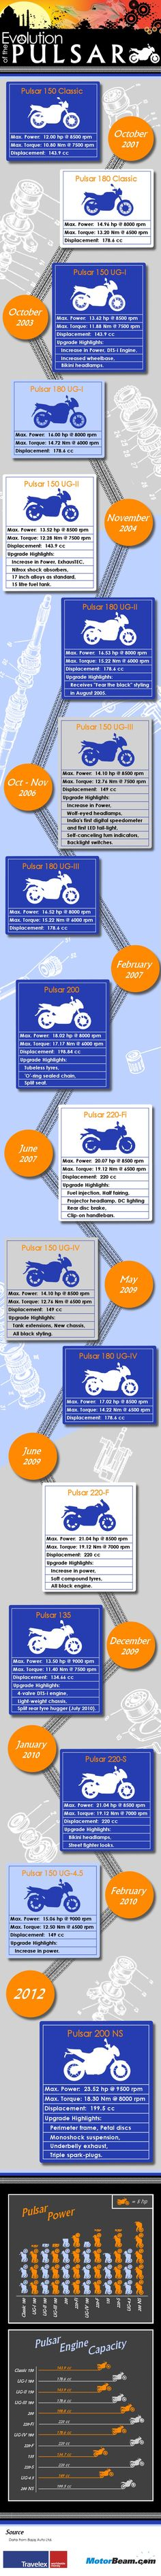 How The Bajaj Pulsar Has Evolved – Infographic